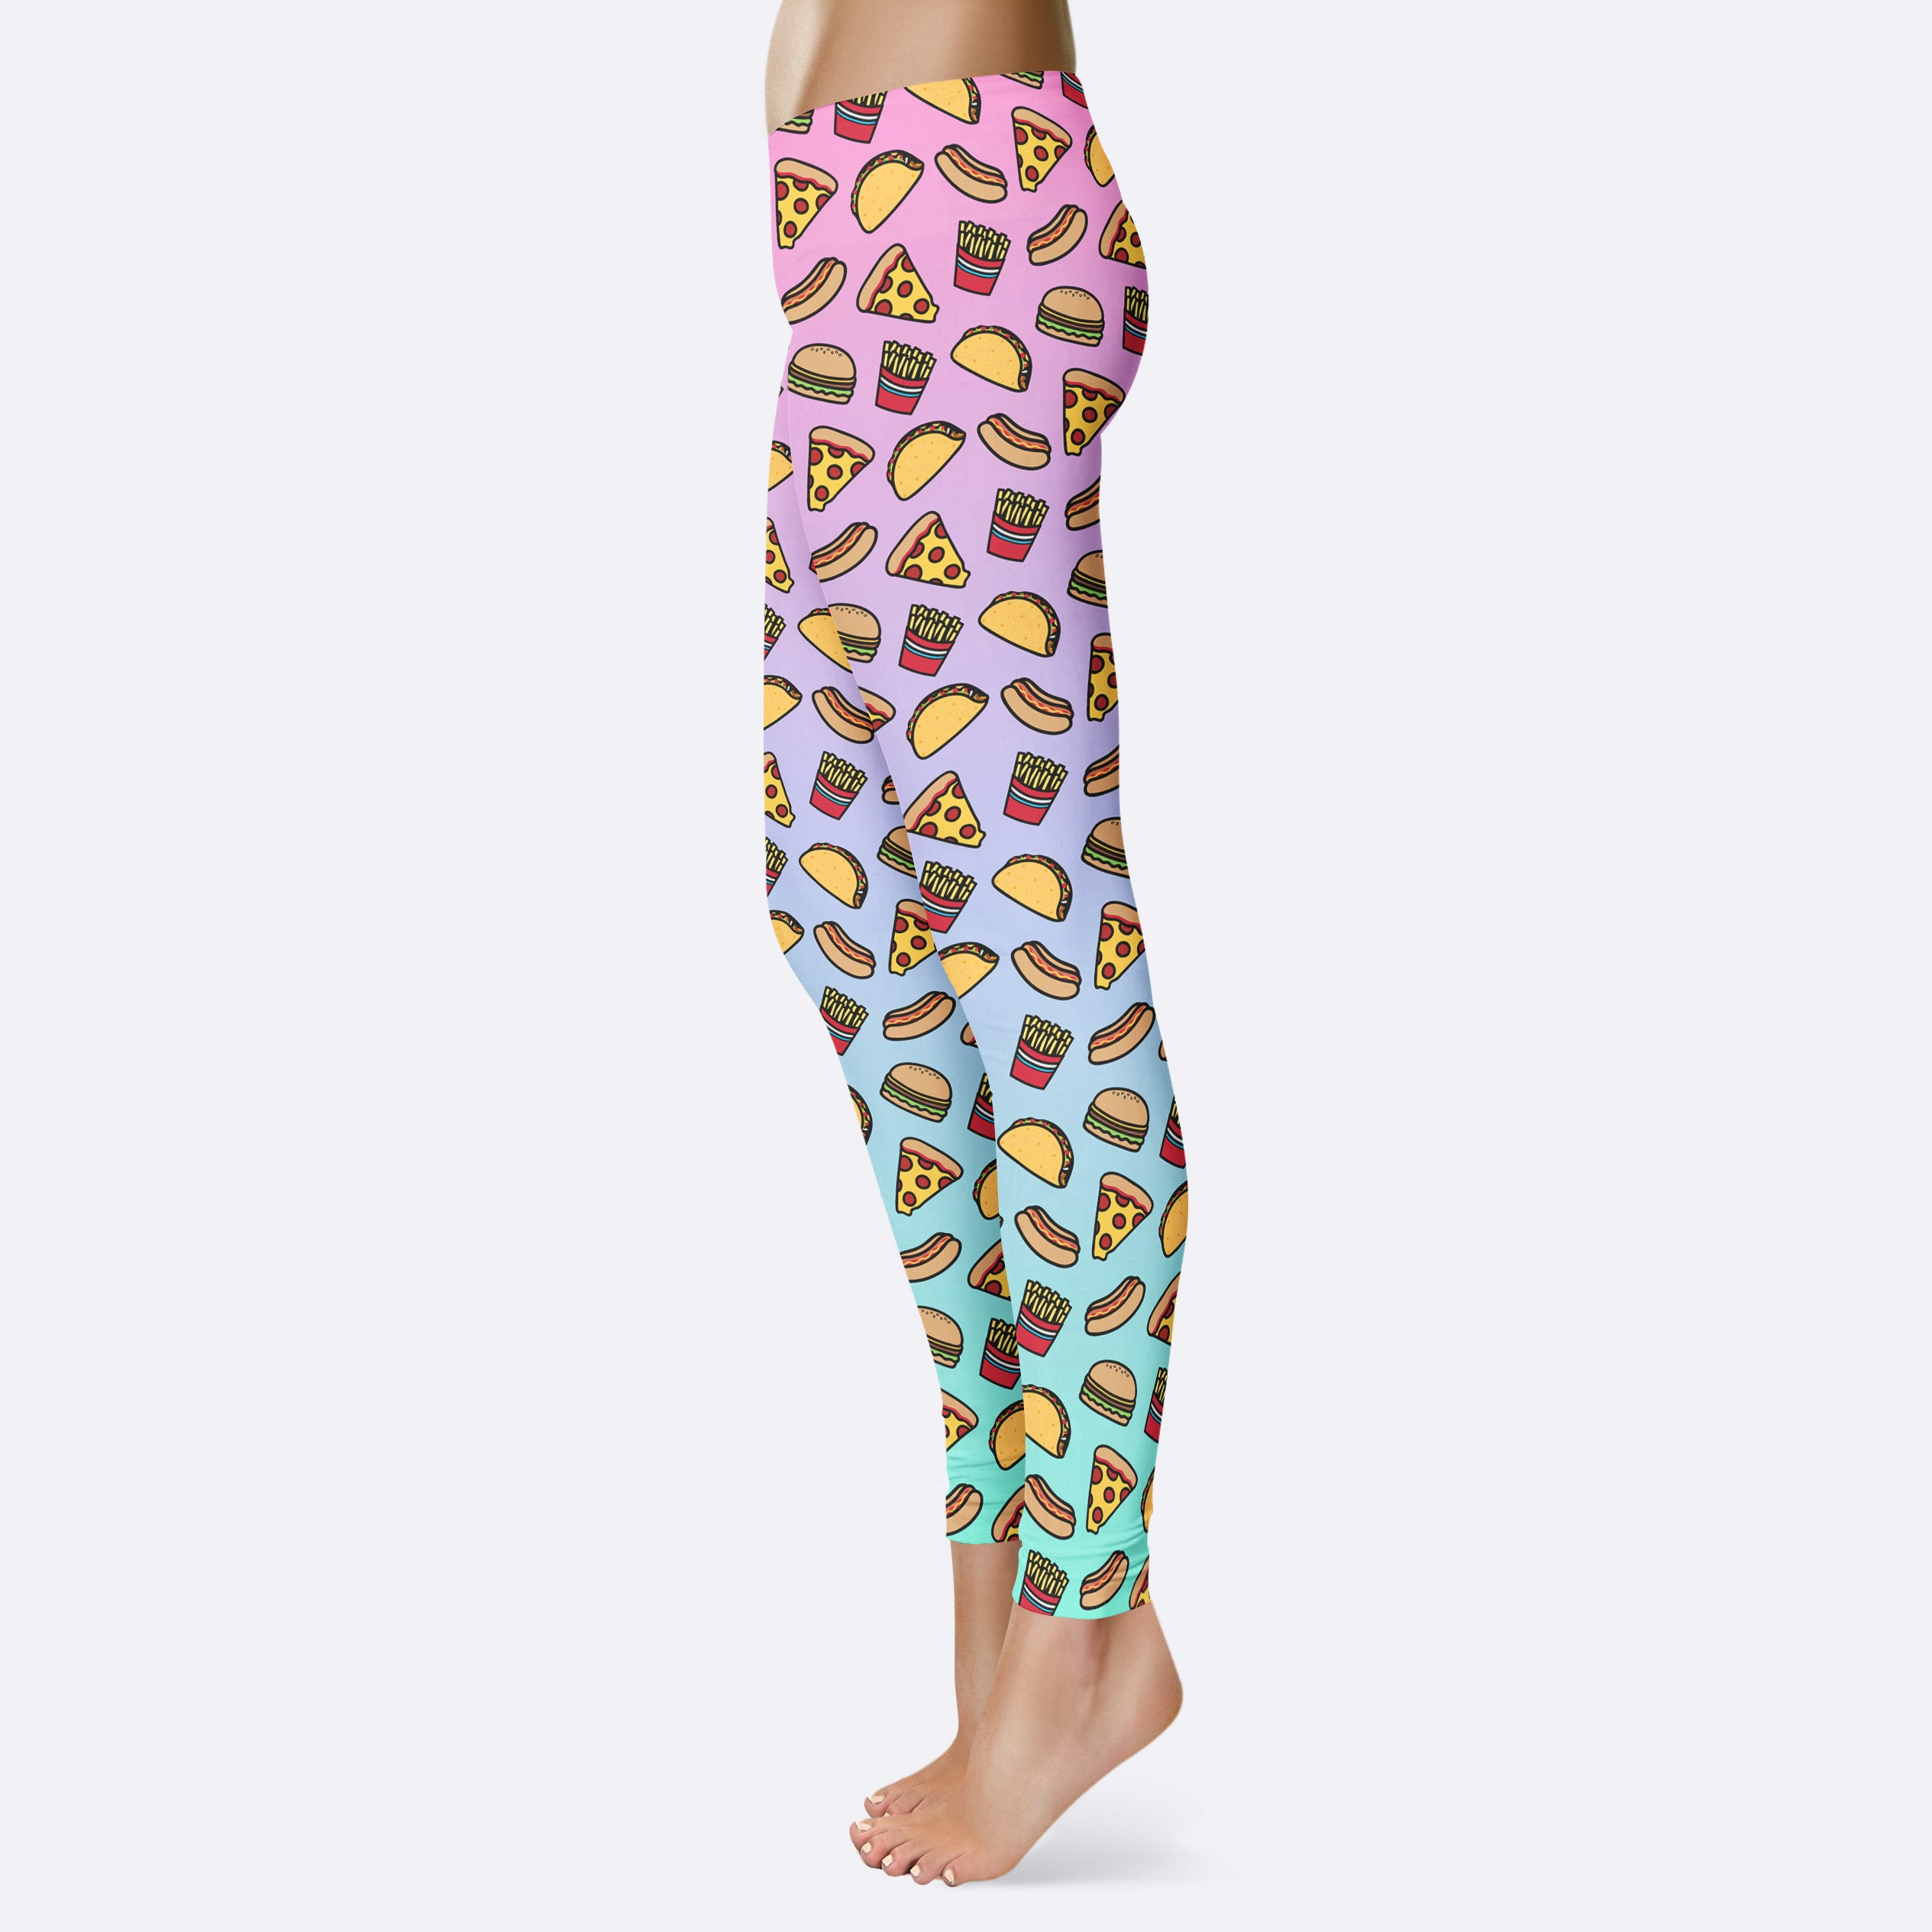 Fast Food Leggings Cute Foodie Leggings Cheeseburger Taco French Fries Pizza Hot Dog Leggings Foodie Gift